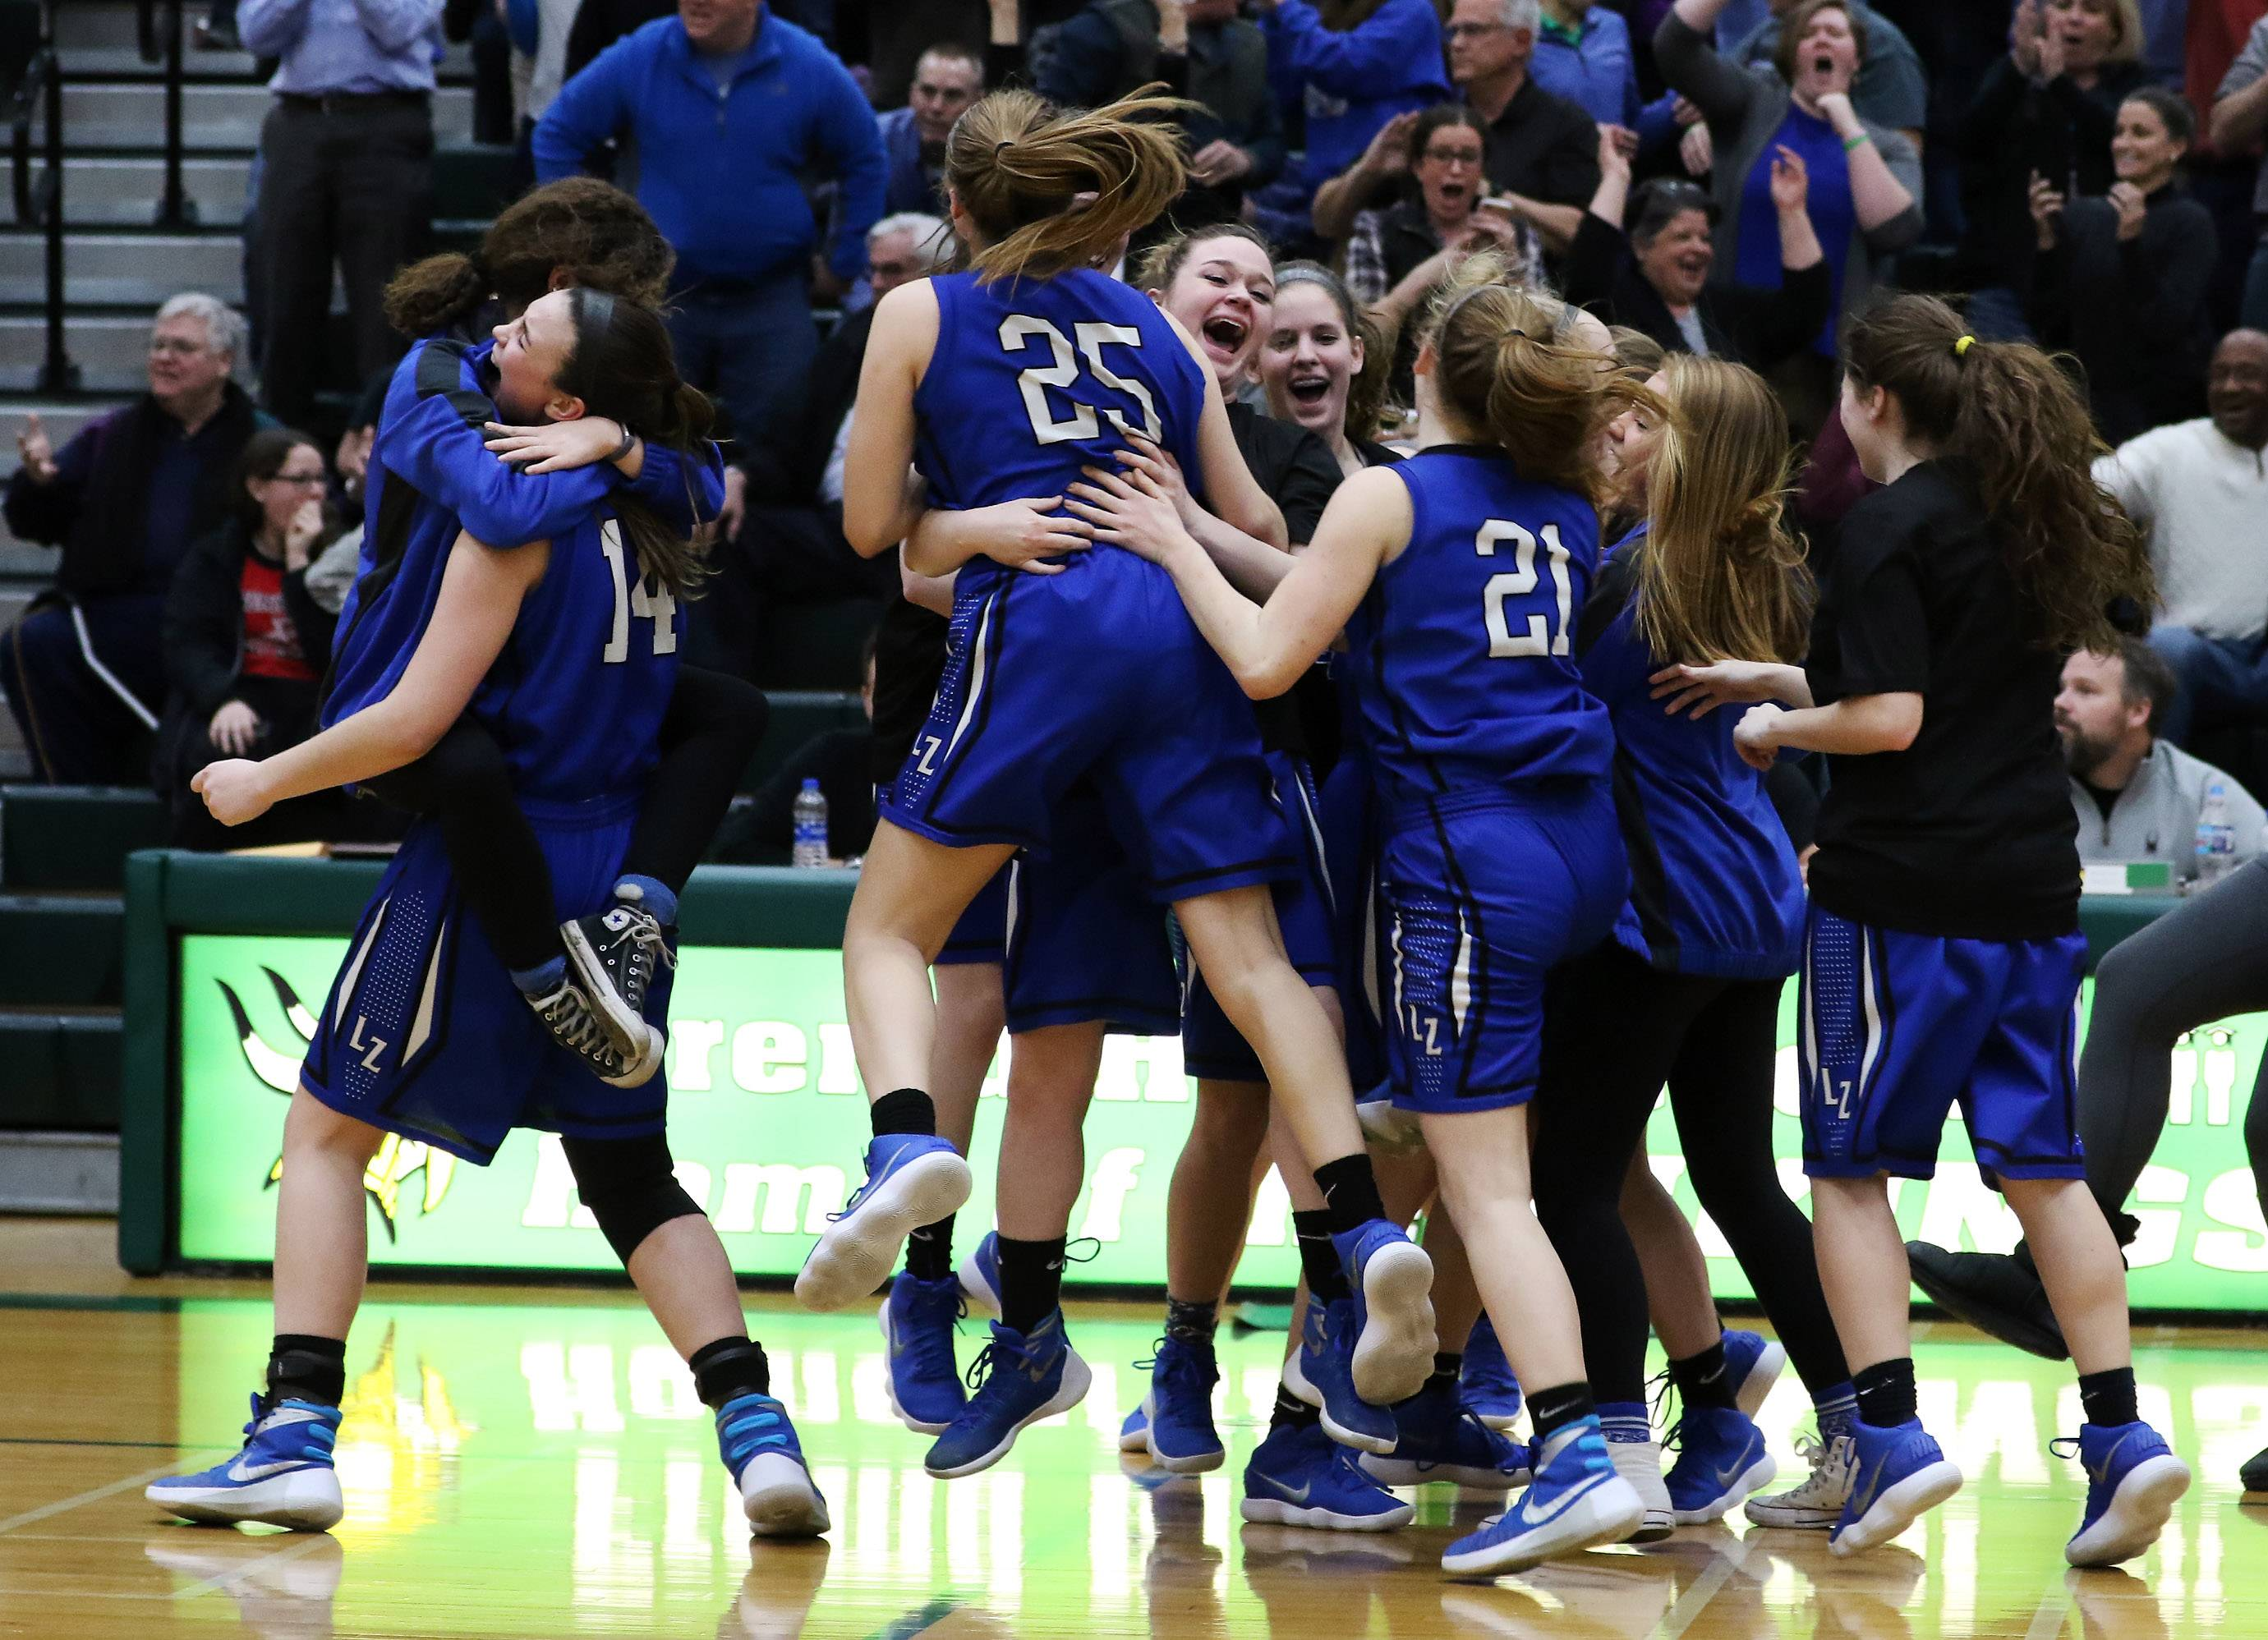 Lake Zurich's Bears celebrate after defeating Warren in the Class 4A sectional final Thursday at Fremd High School in Palatine.